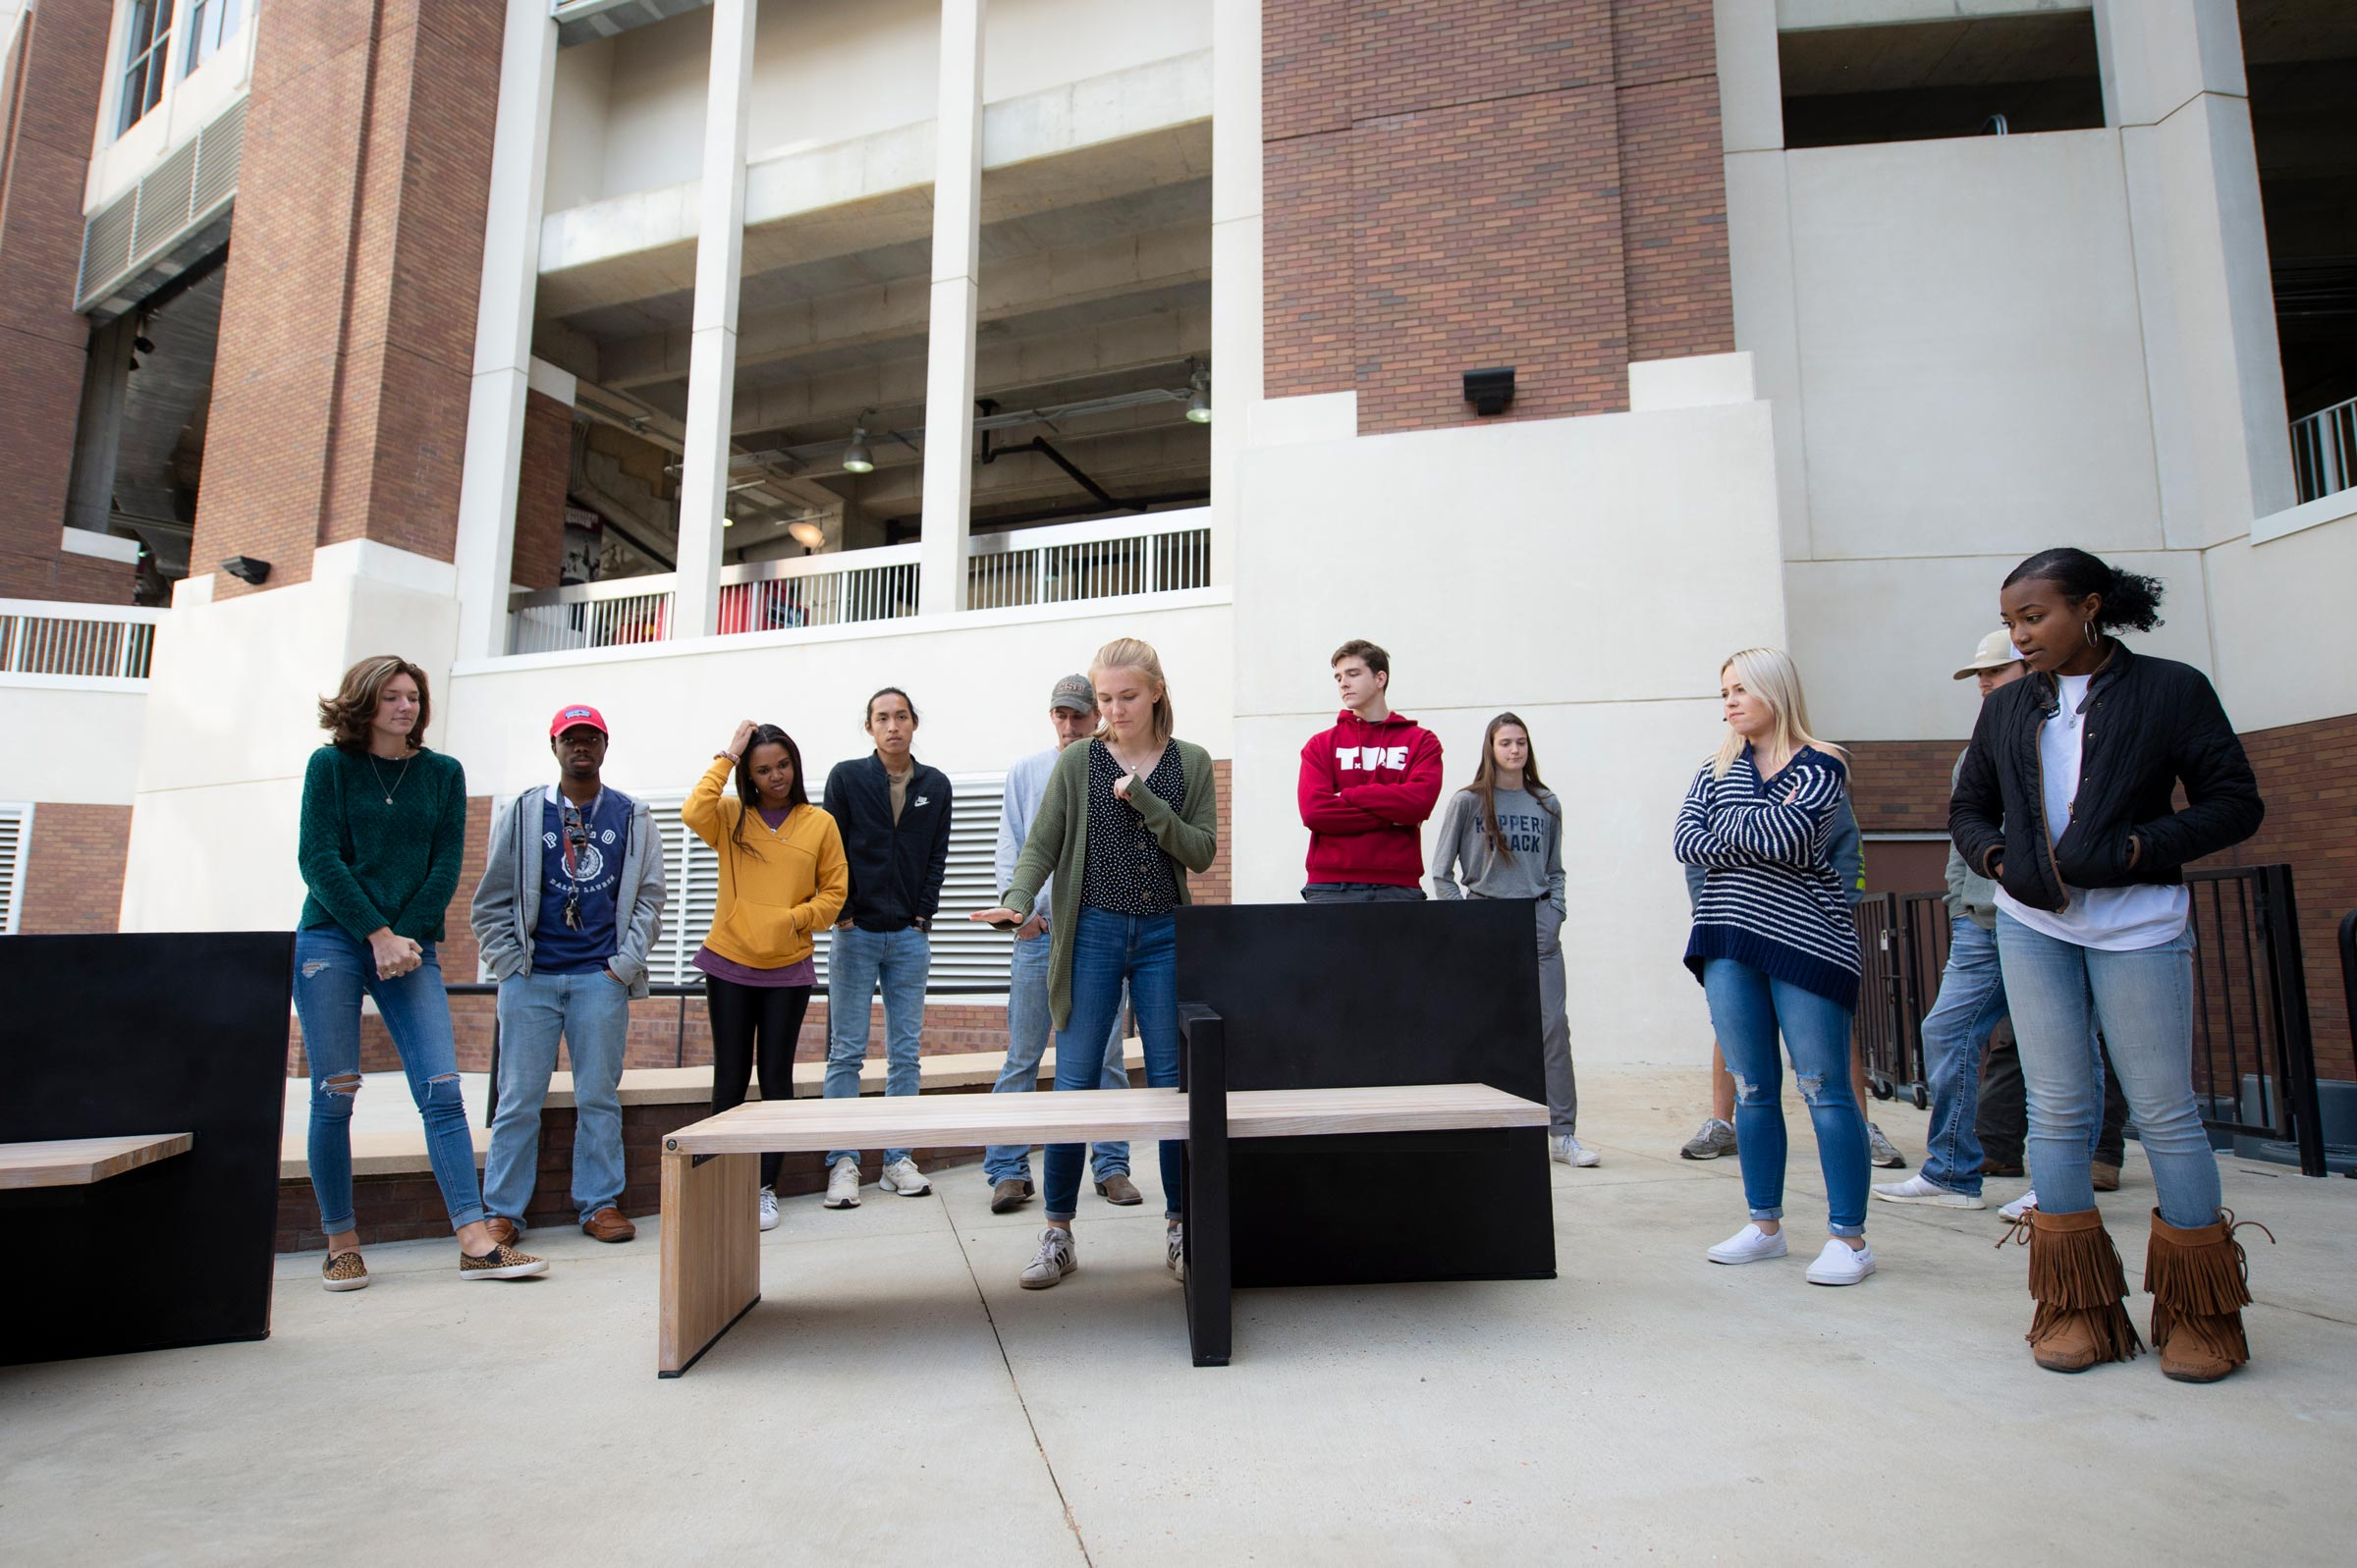 Ruthie Southall, a member of group one, explains the features of their handicap accessible bench during Architecture-Building Construction Science bench project presentations.